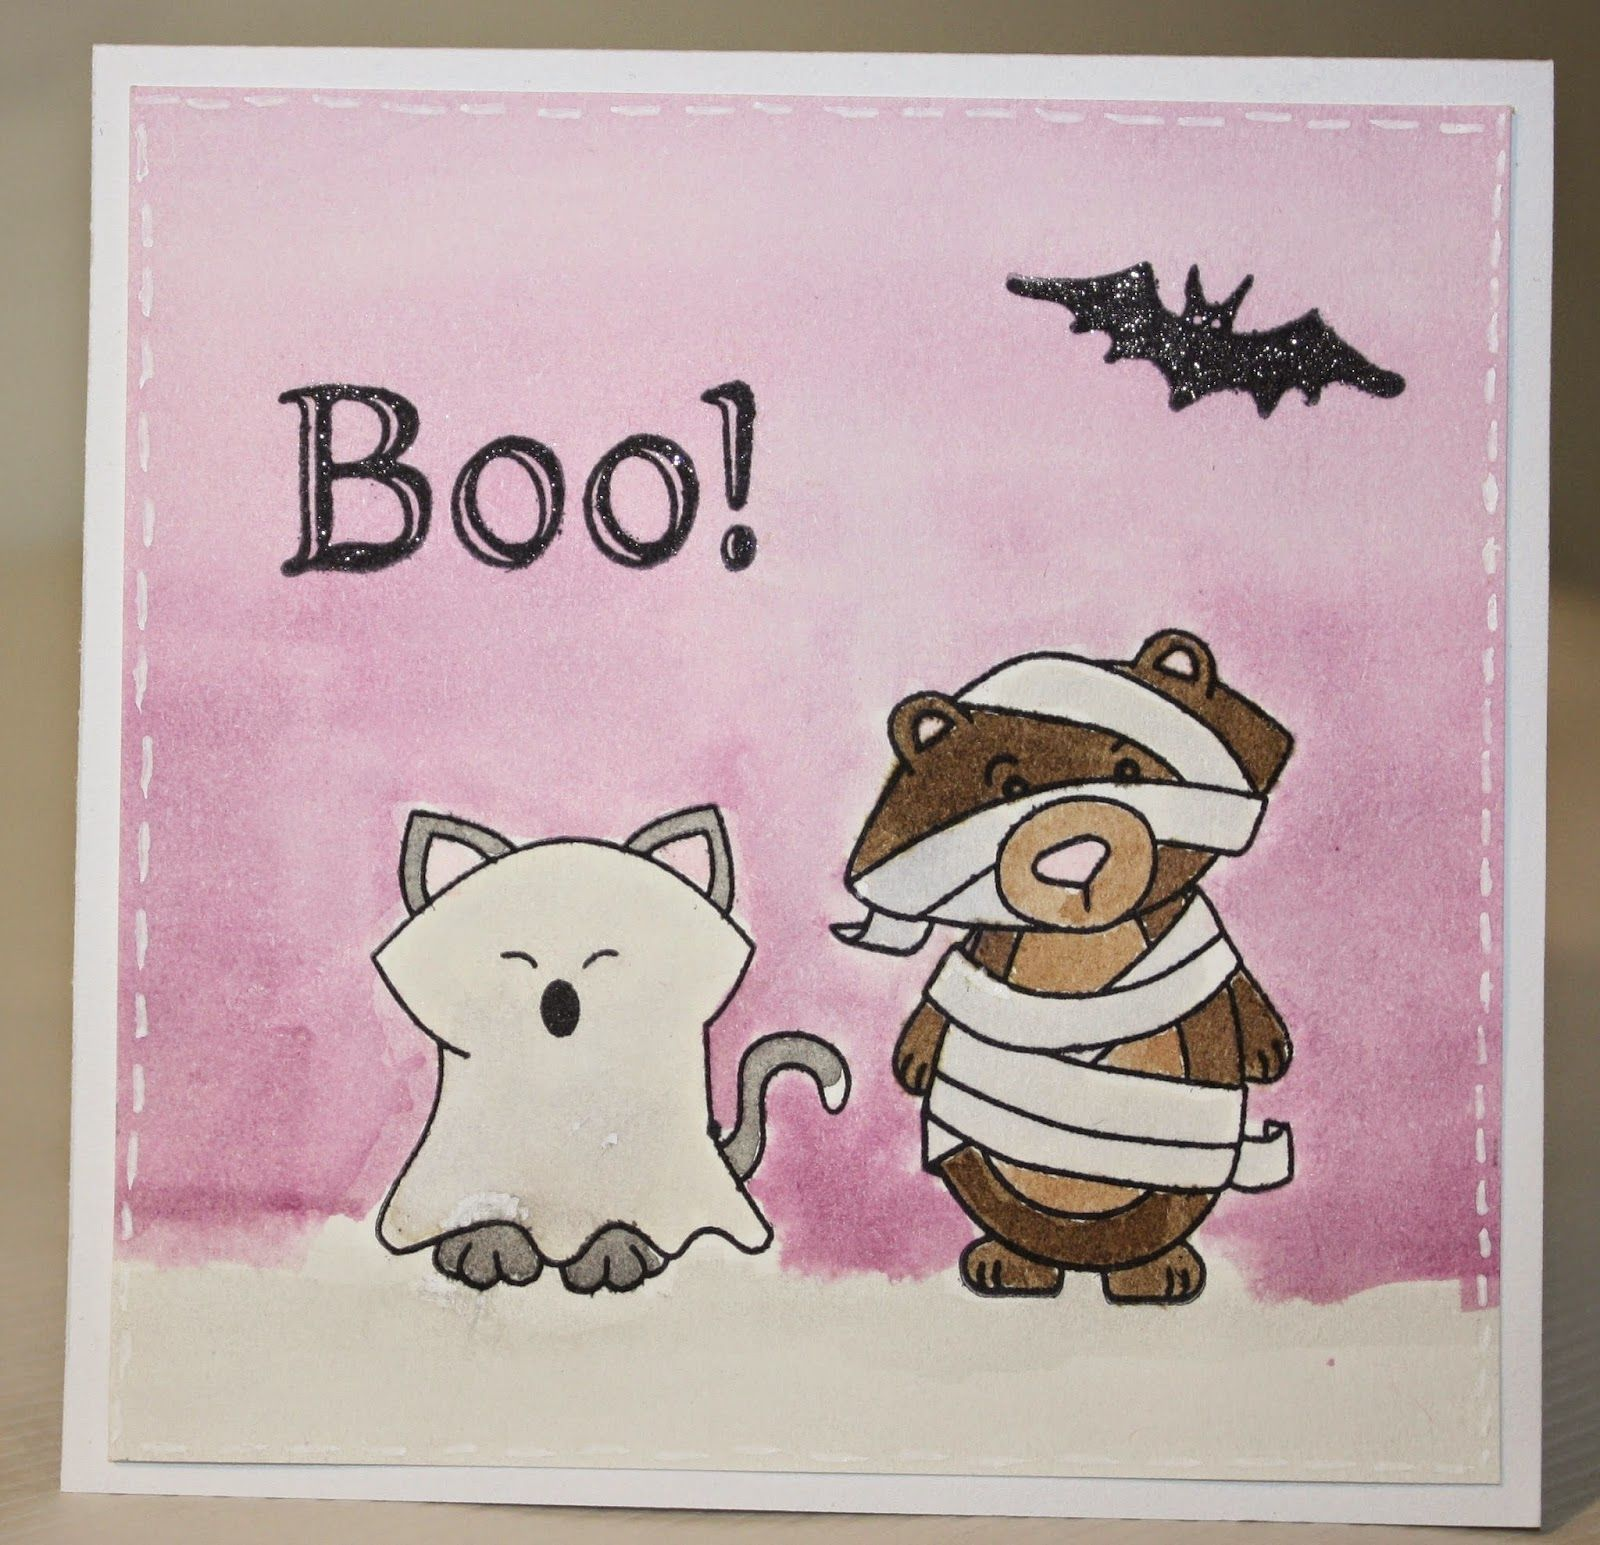 Craftyscrappyness Halloween Card Using Boo Crew Stamp Set By Newton's Nook  Designs!